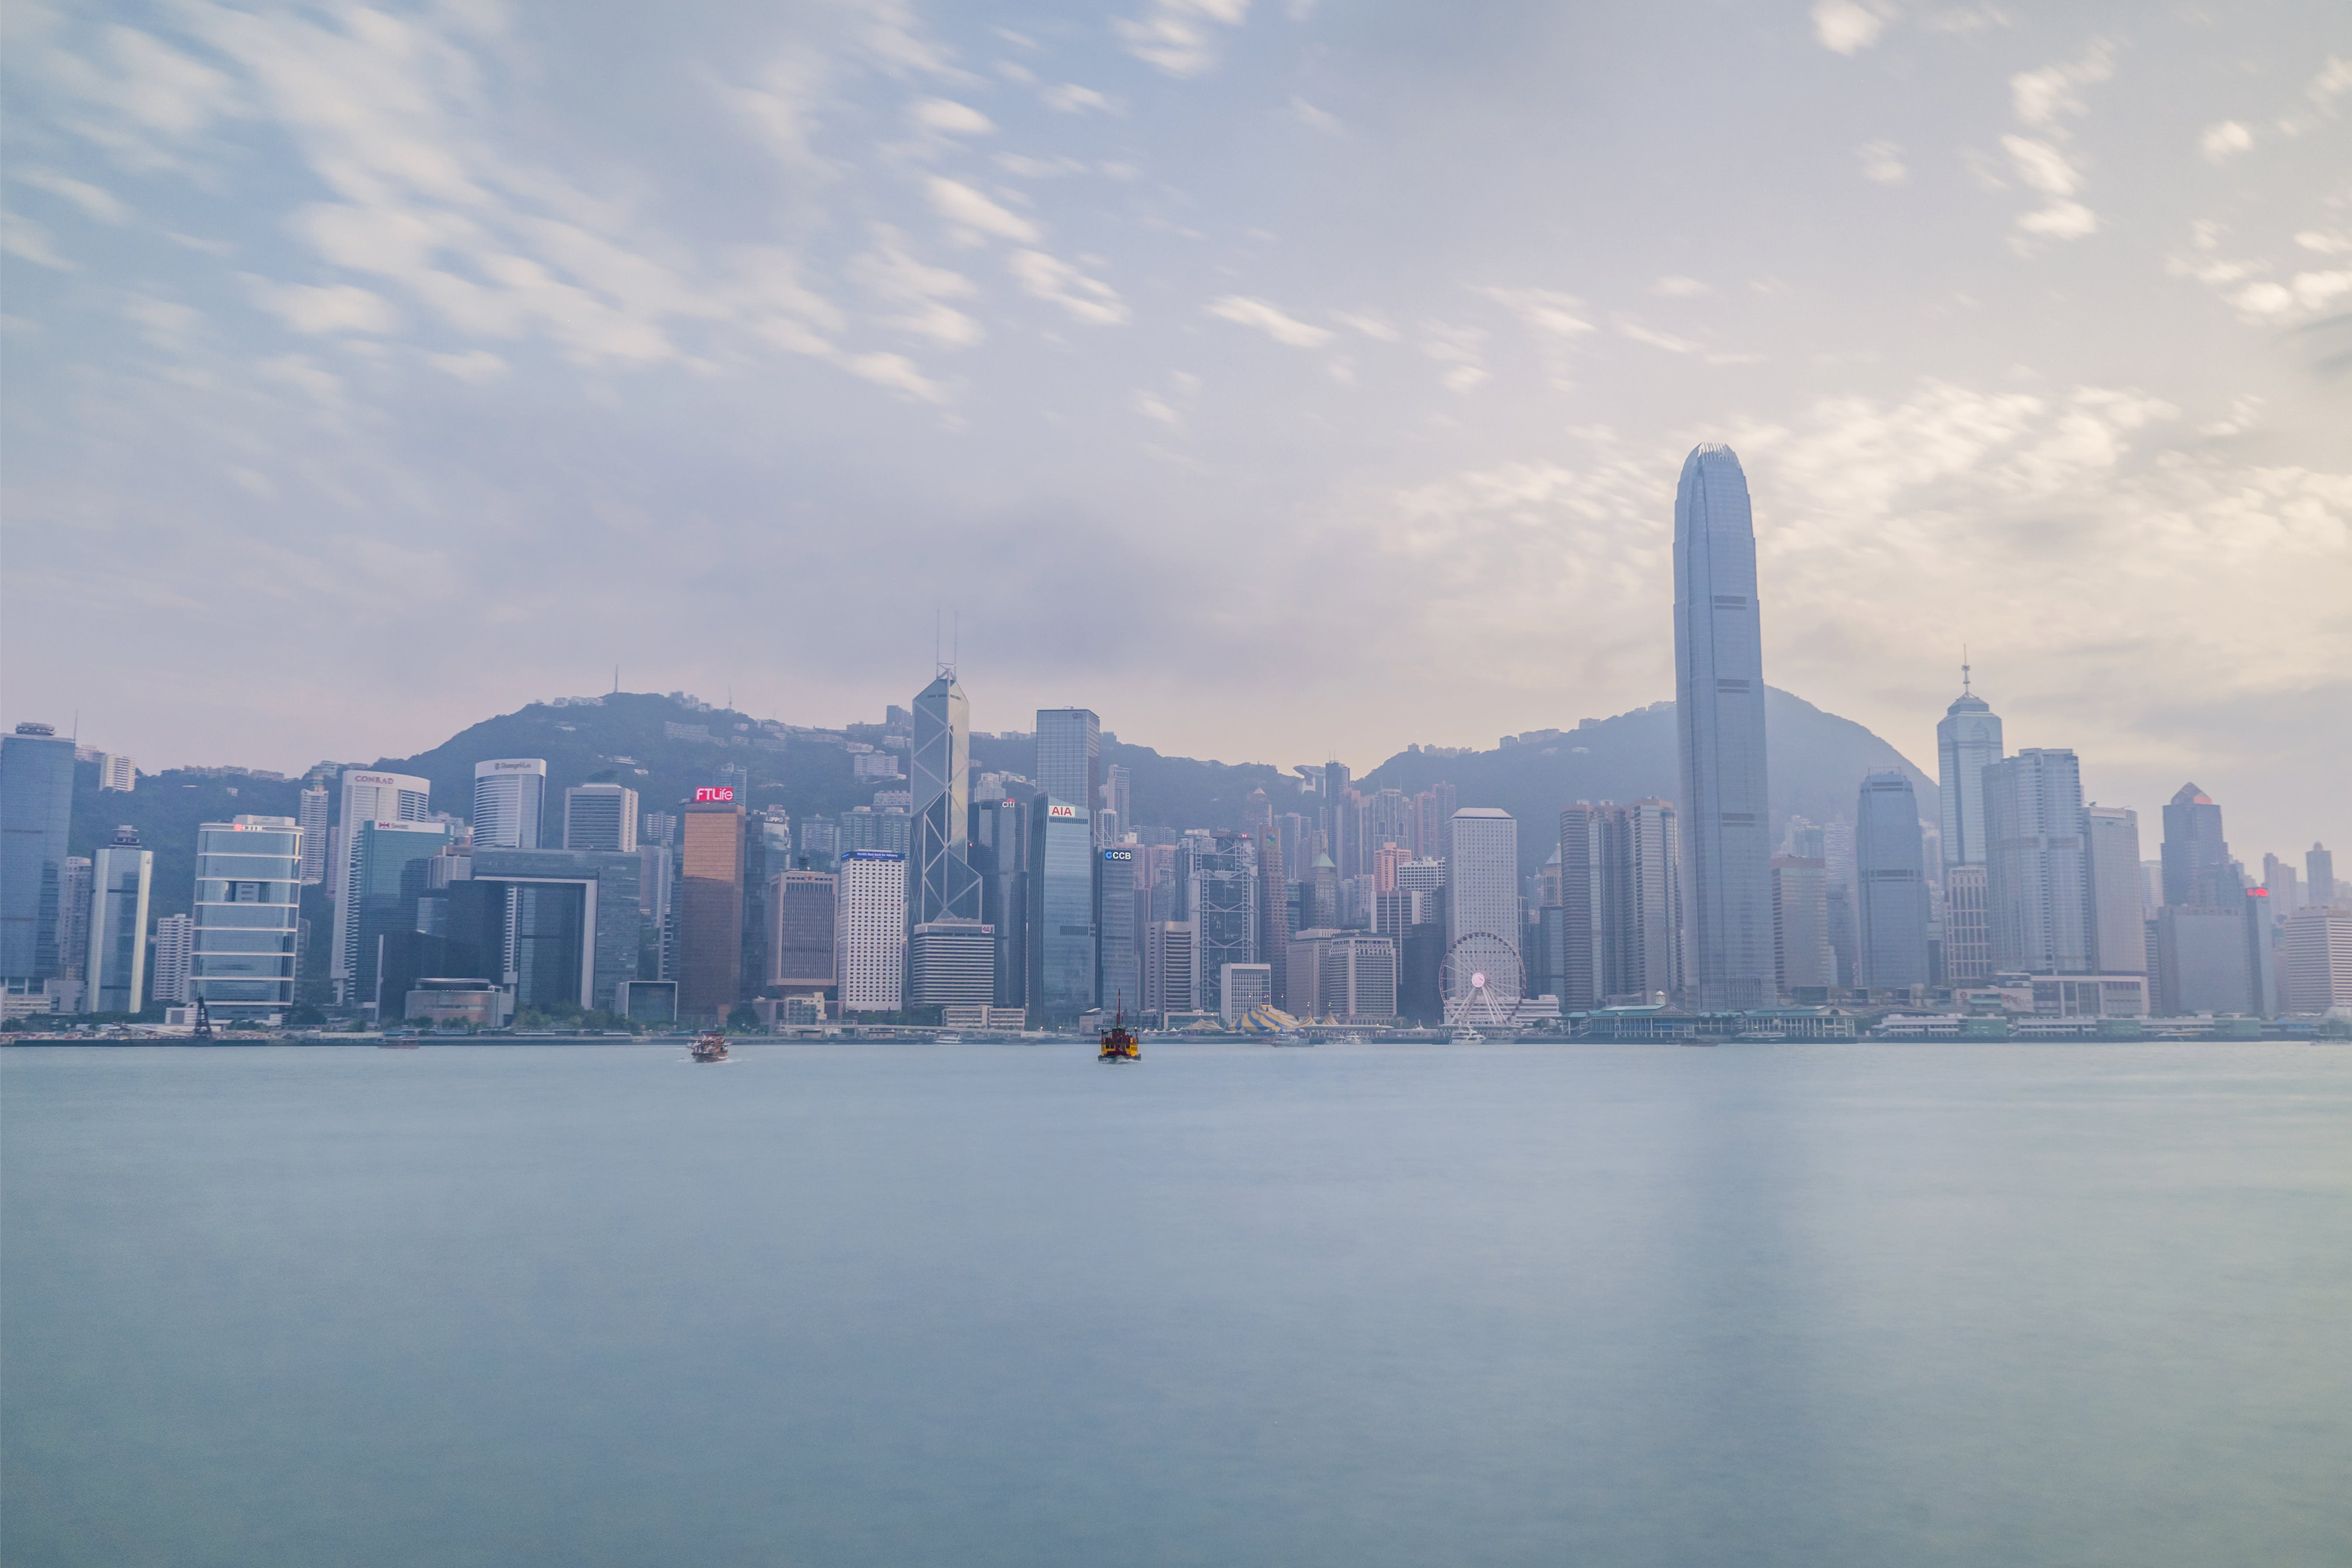 Skyline Photography of Hong Kong City